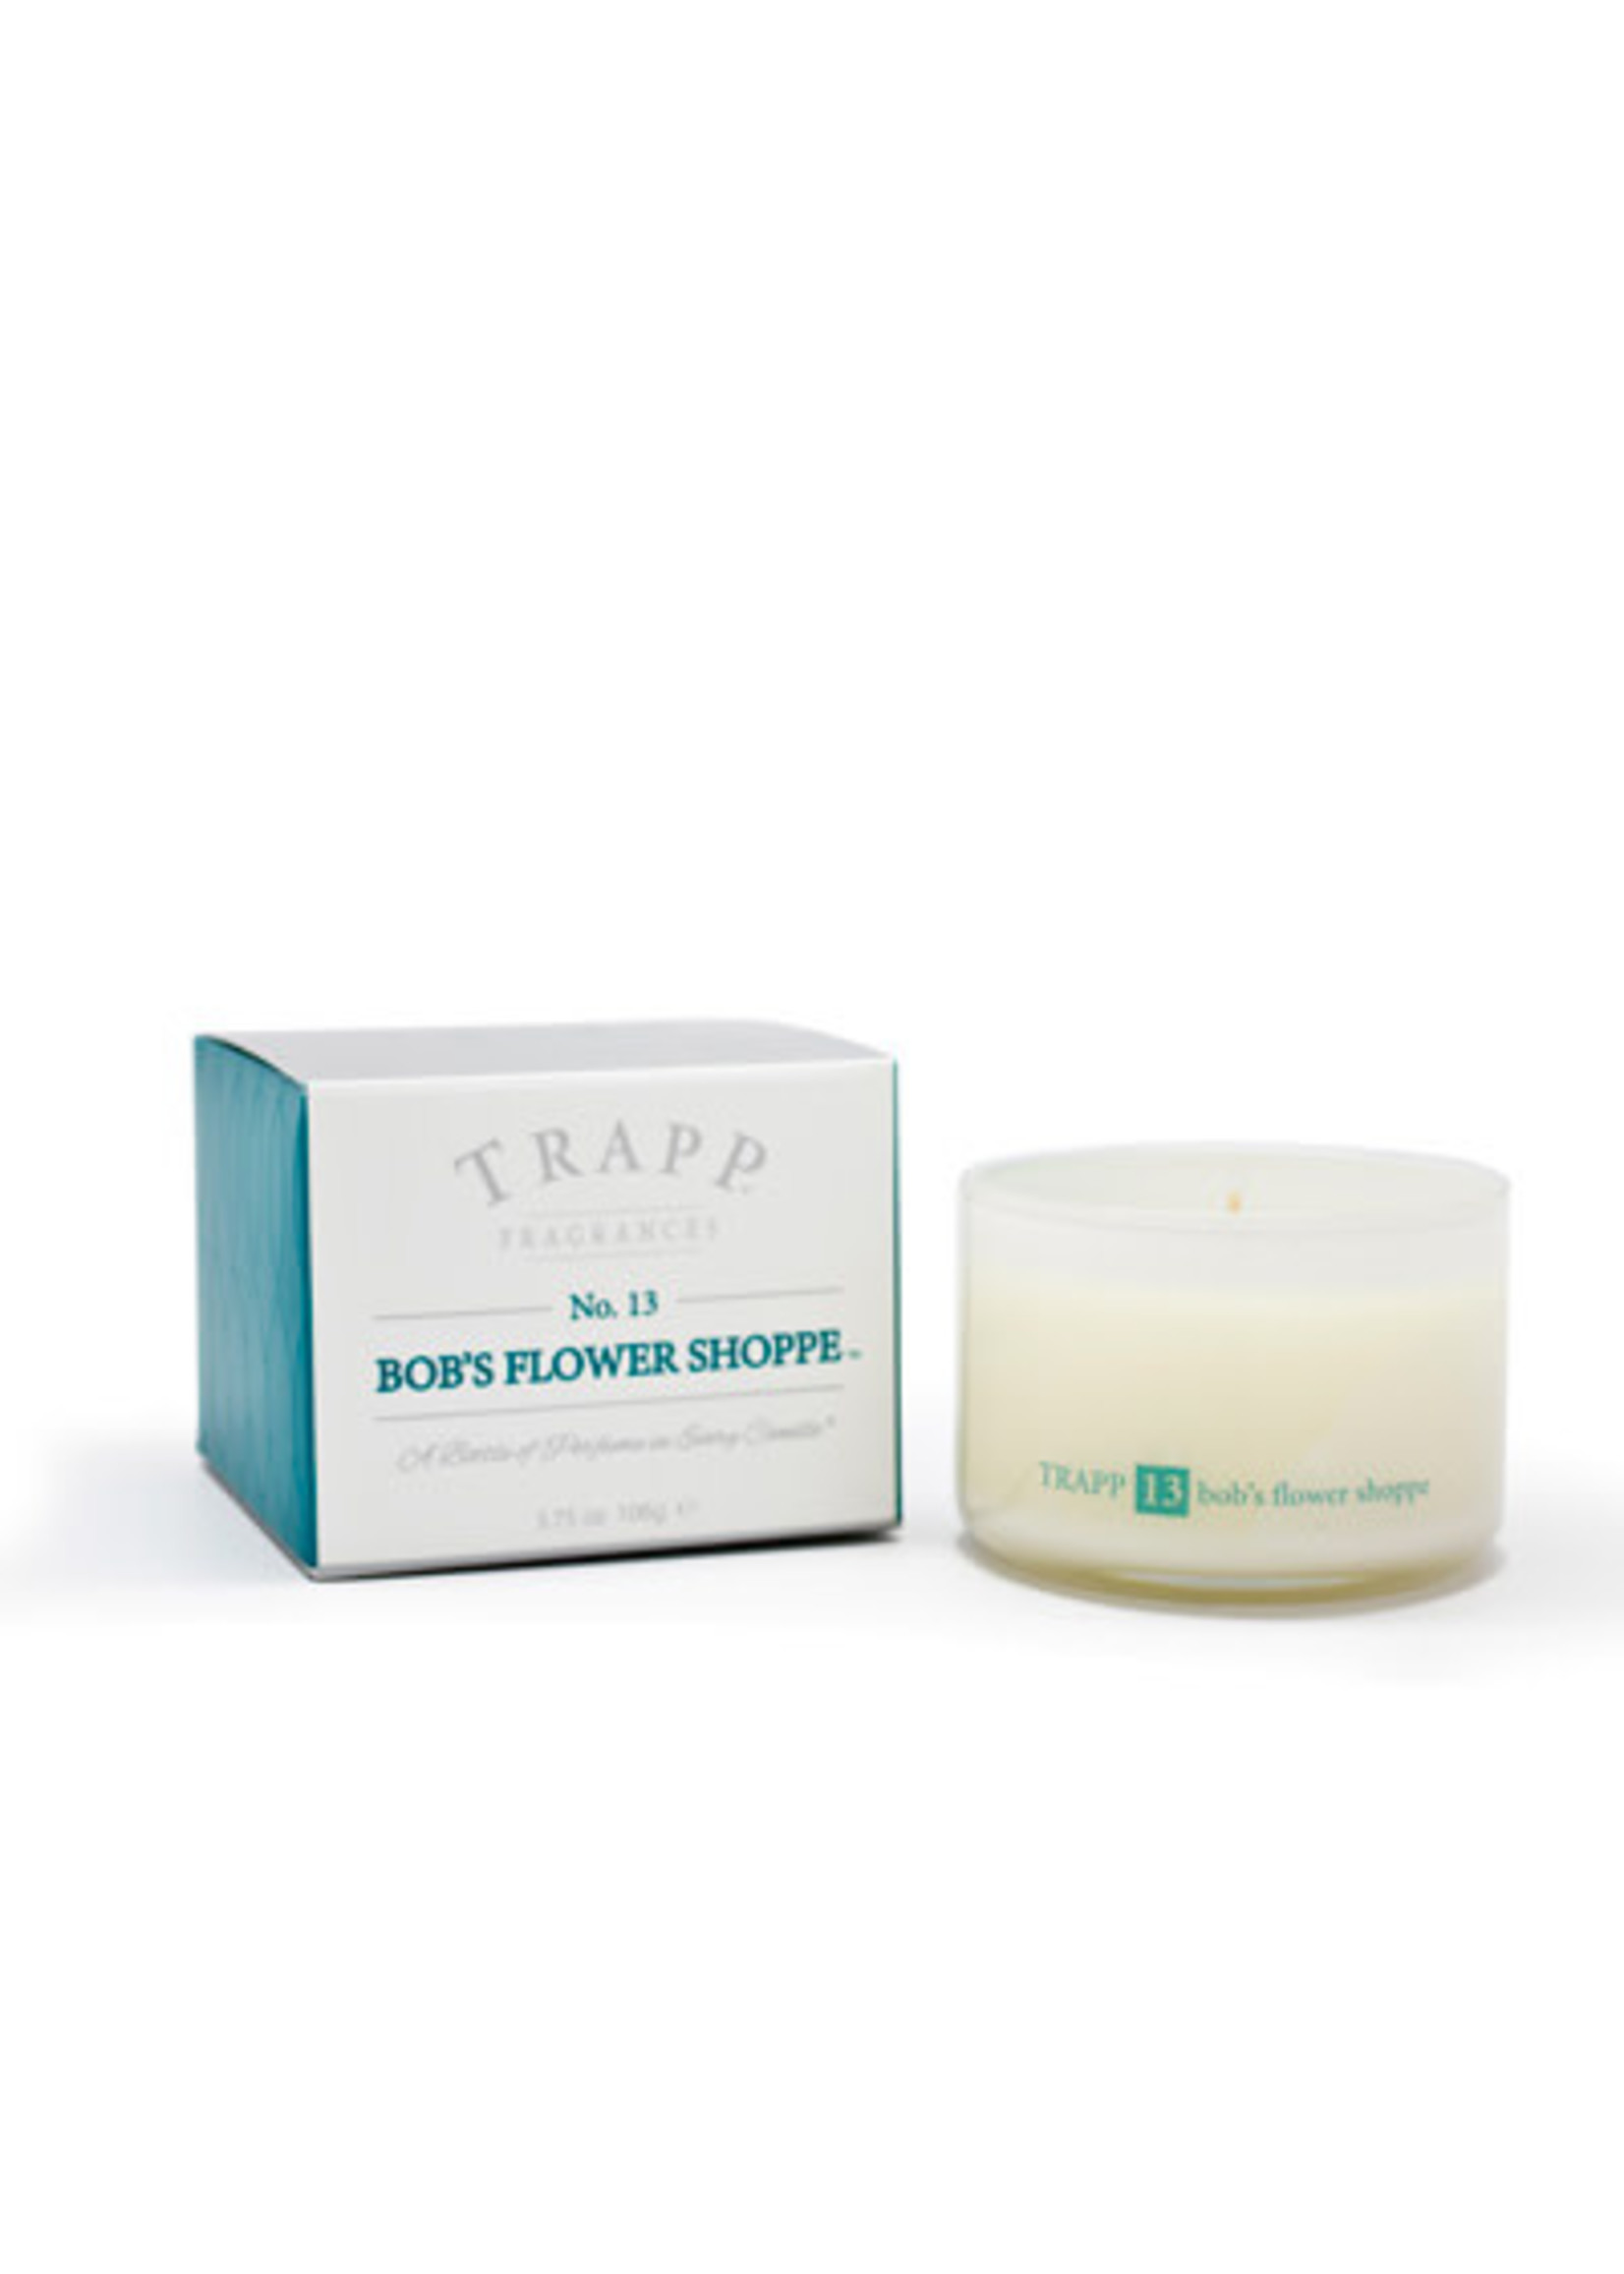 Trapp Candles Ambiance Collection - No. 13 Bob's Flower Shoppe - 3.75 oz. Poured Candle